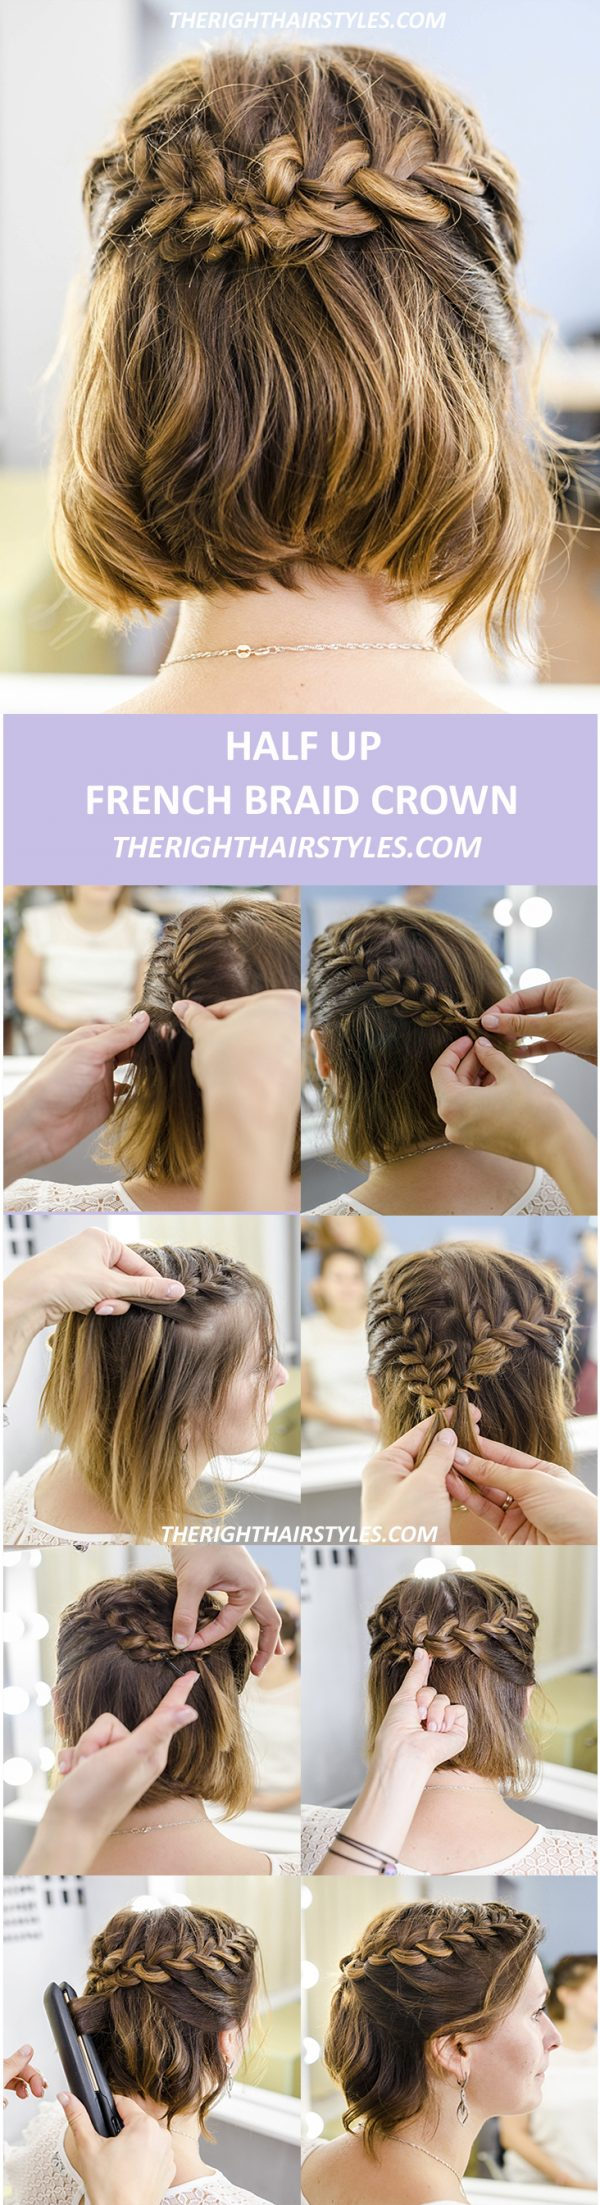 How to Make a Half-Up Crown Braid in 6 Easy Steps